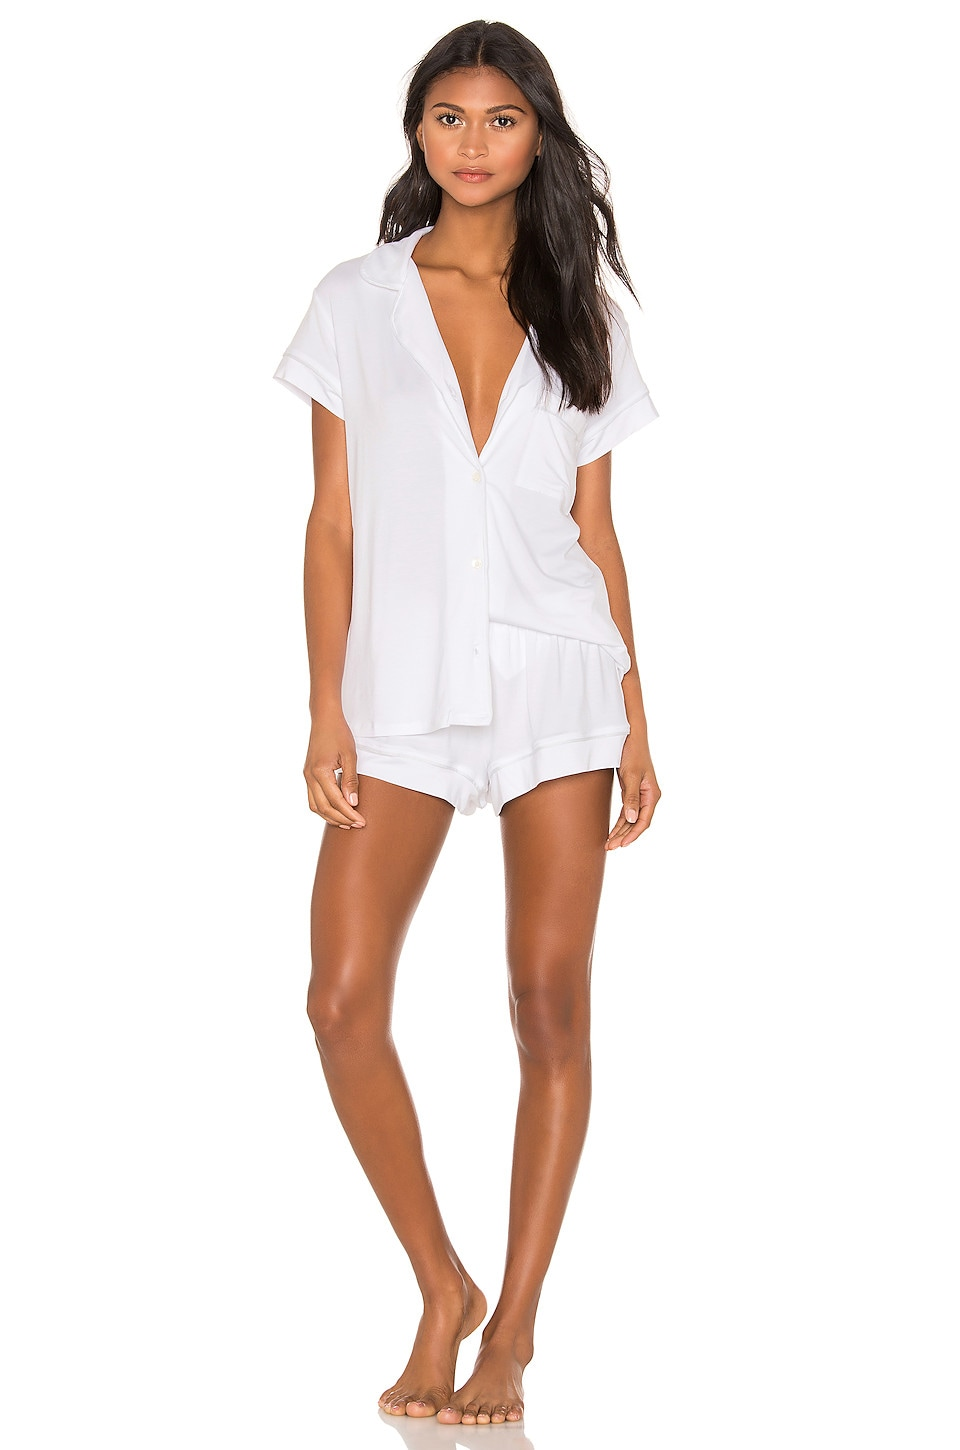 eberjey Gisele Short PJ Set in White & Water Blue